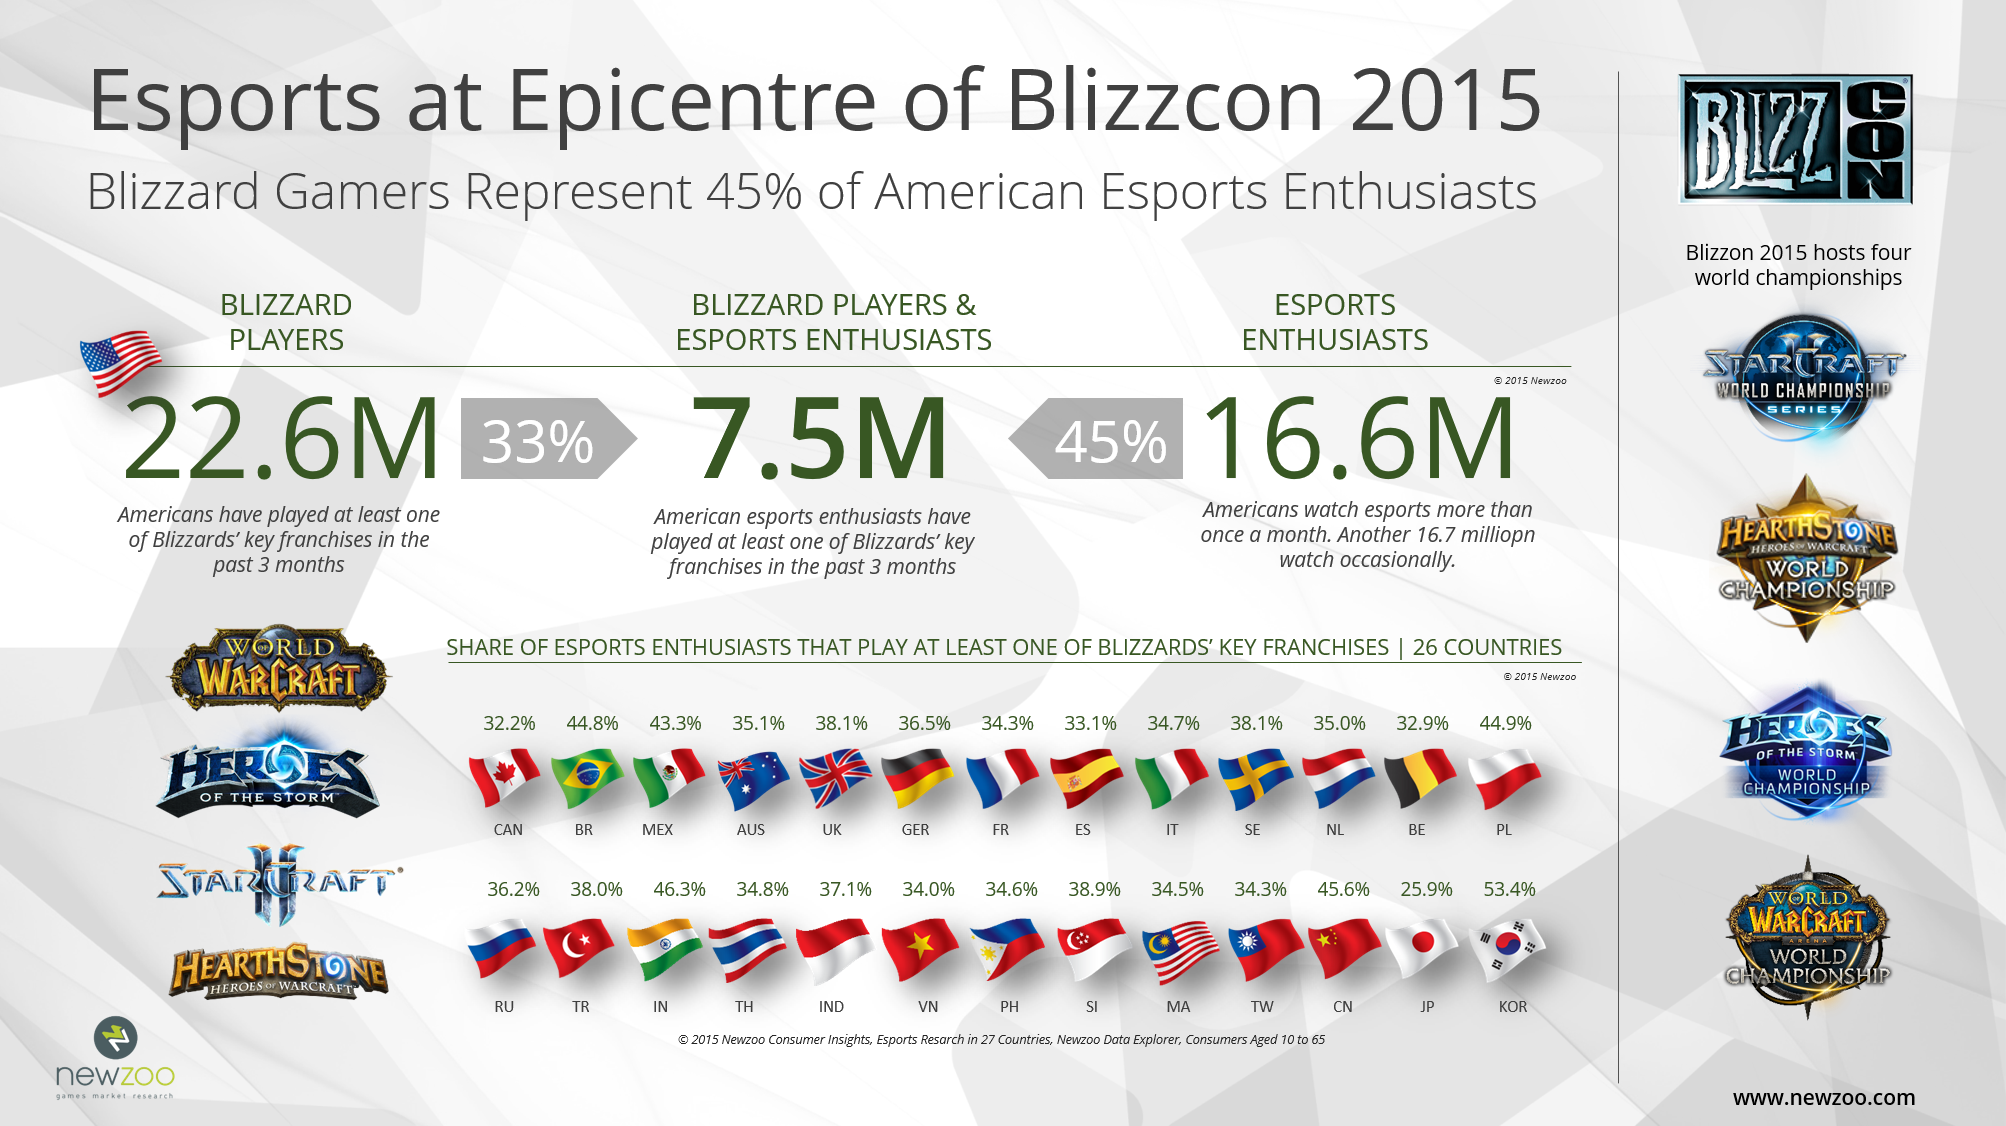 Newzoo research shows how popular Blizzard Entertainment eSports games are.